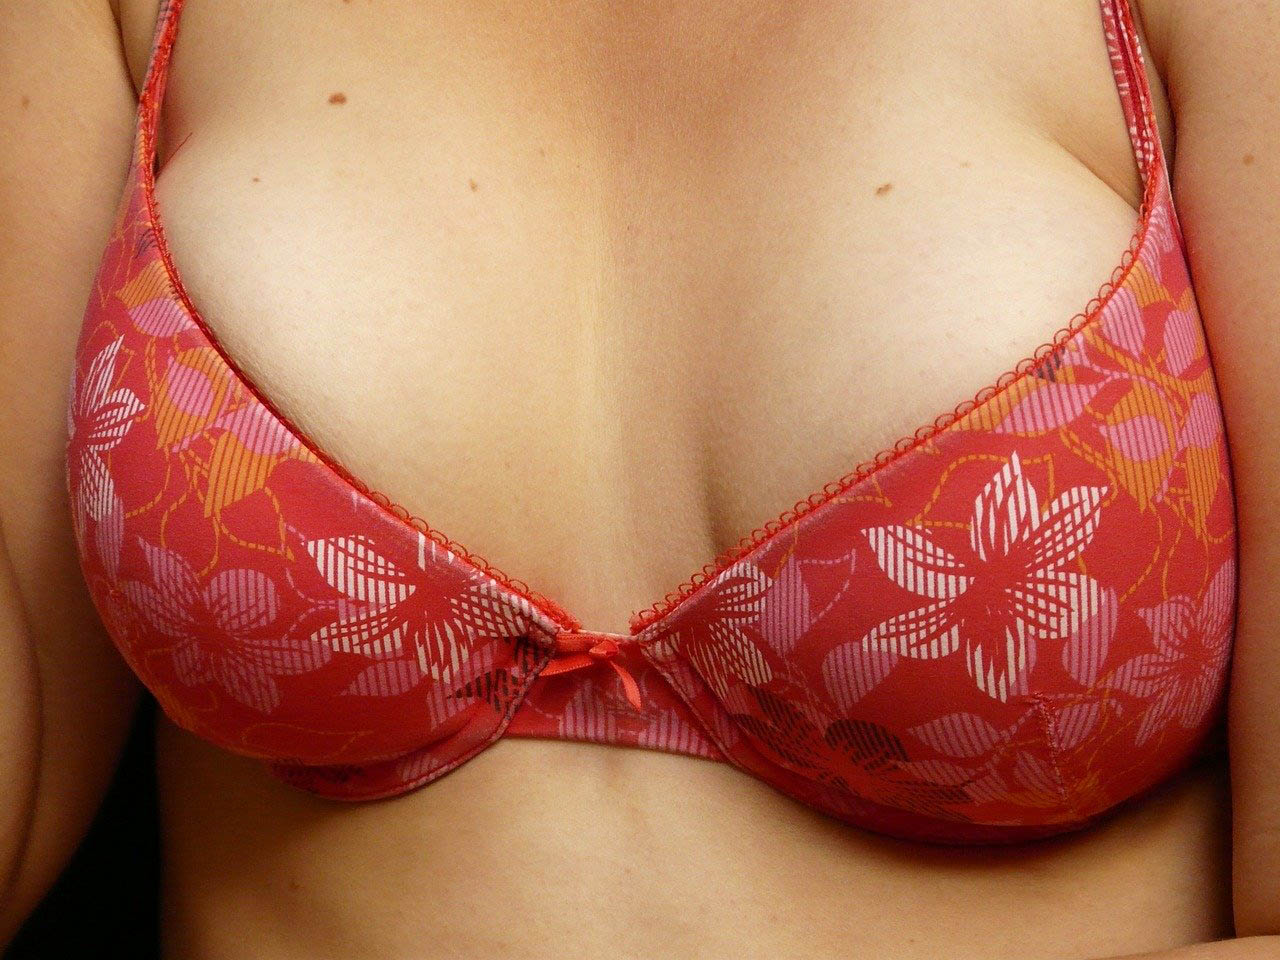 close up photo of breasts and bra after breast reduction